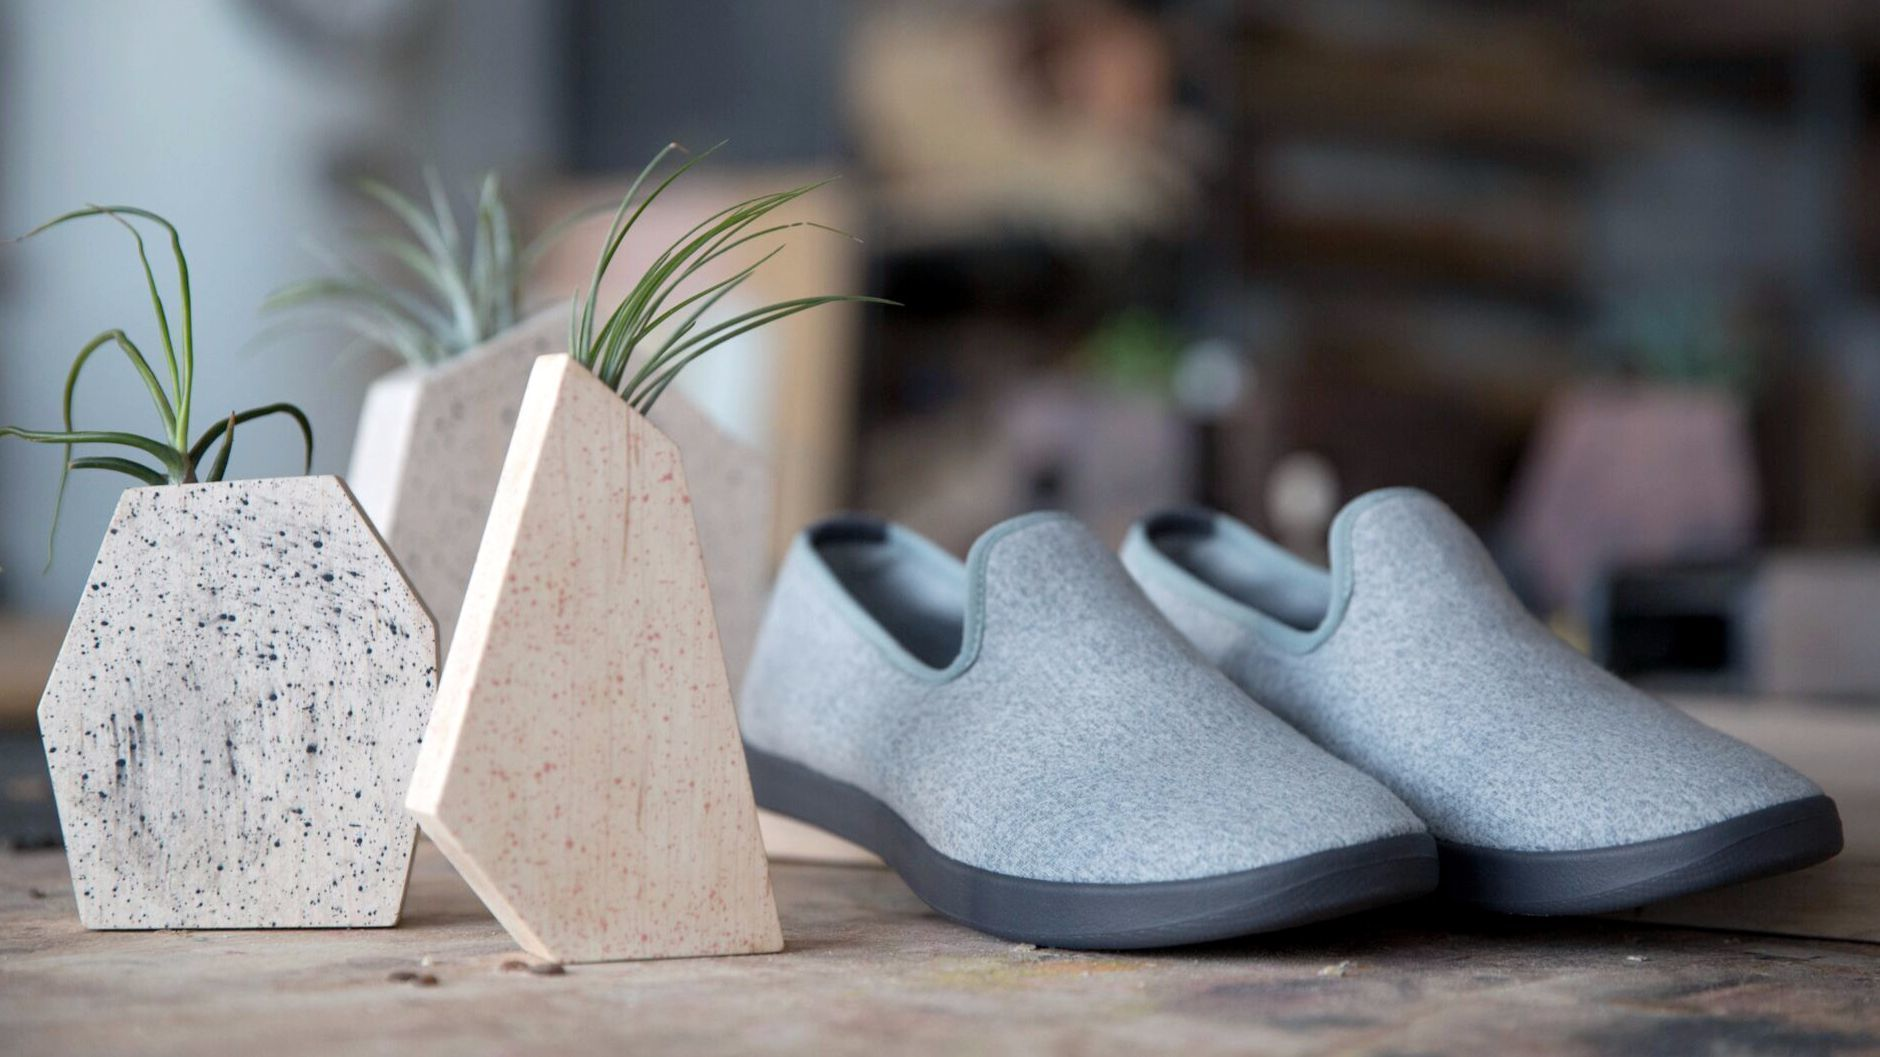 allbirds opens a popup shop featuring footwear and specialty food and home  goods at grand central market. Home Goods Shop Online  Top Home Goods On Home Goods Store Image